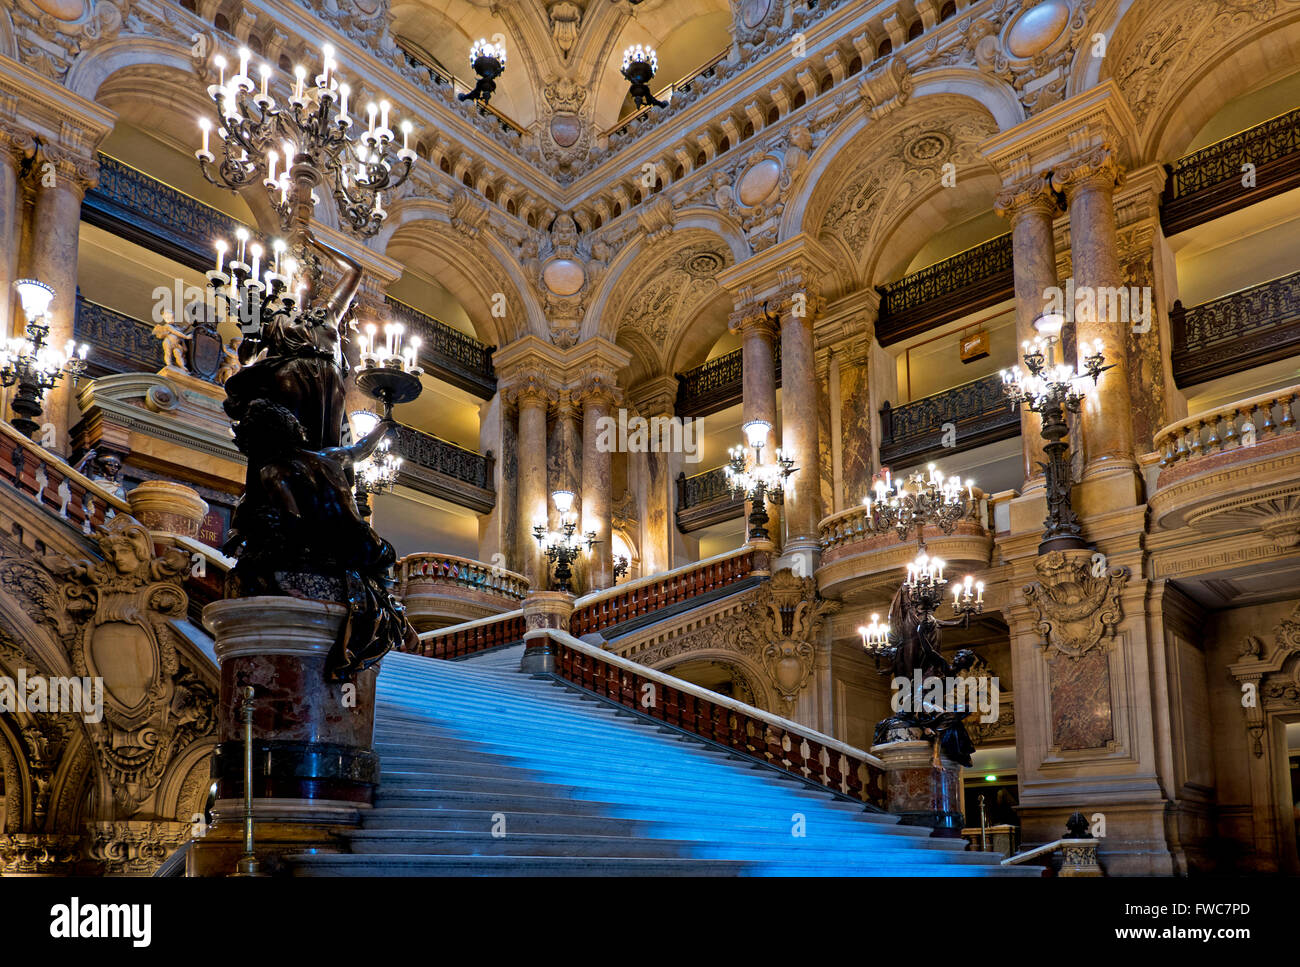 Staircase at the Opéra National de Paris Garnier, Paris, France. Designed by Charles Garnier for Napoleon III - Stock Image